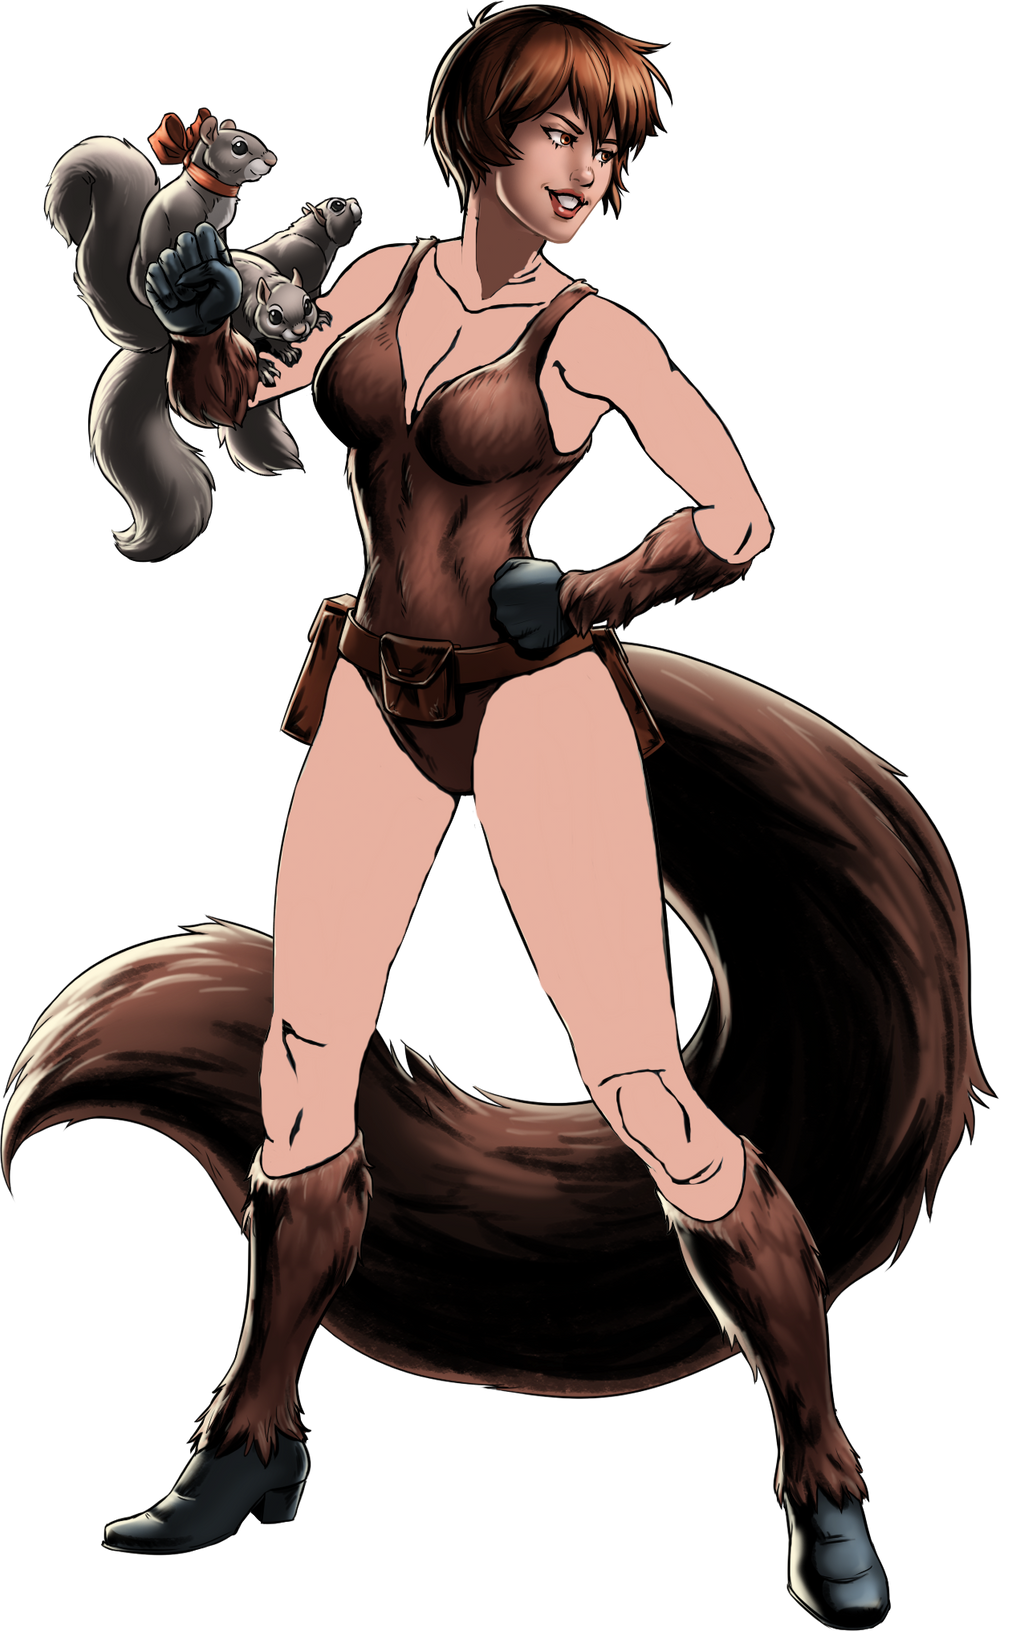 Spy girl marvel naked that would